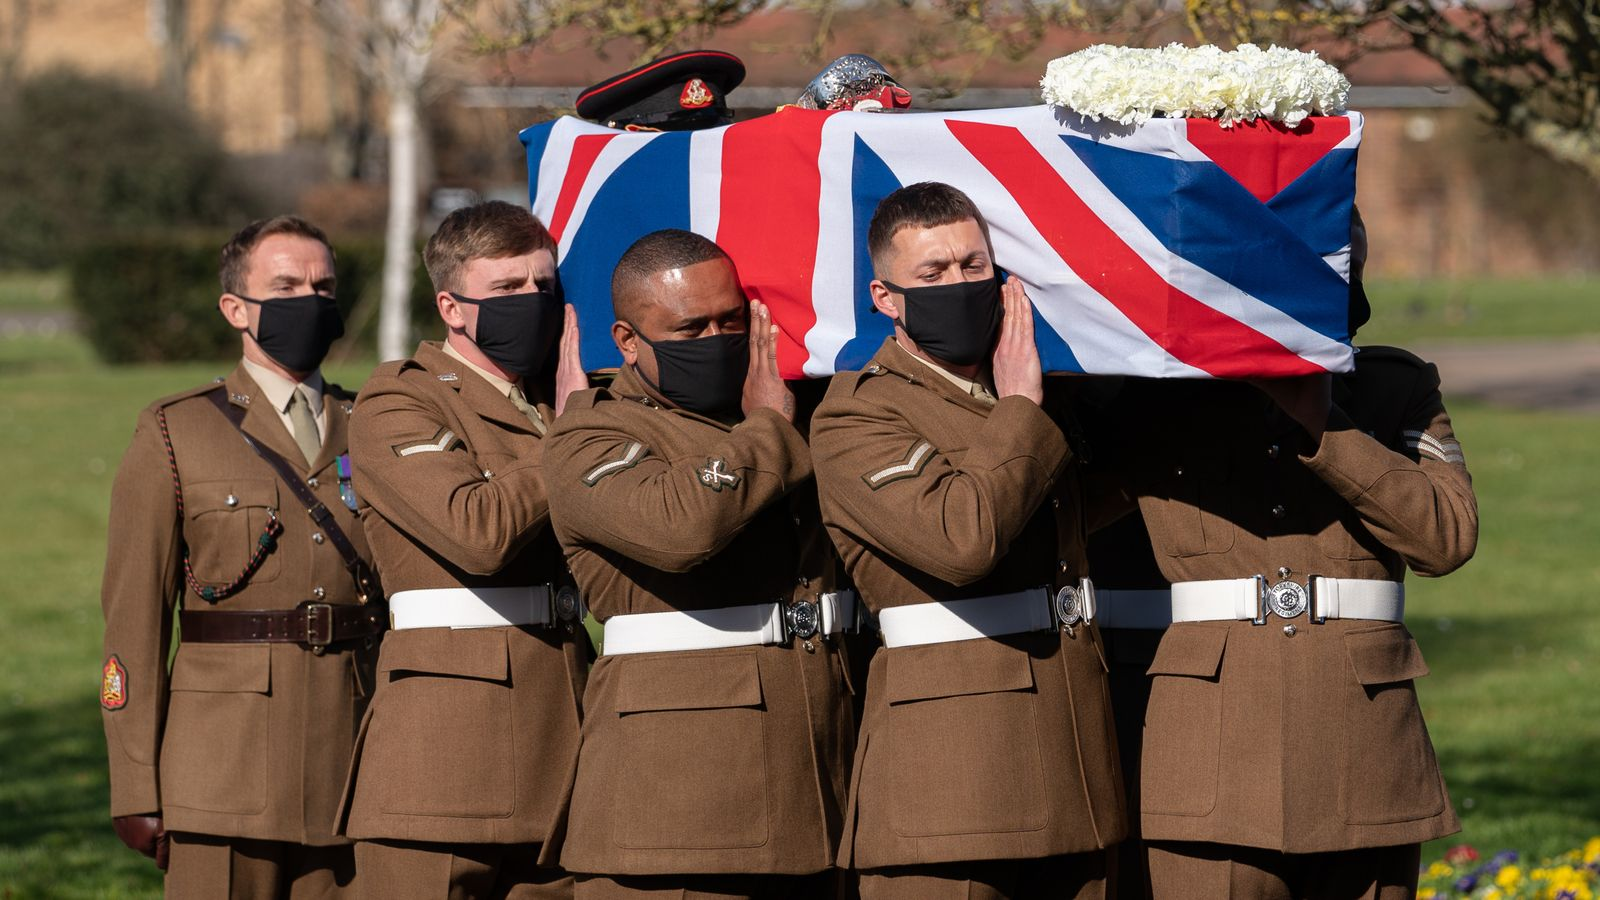 Captain Sir Tom Moore funeral: Military flypast as family says 'his spirit lives on'